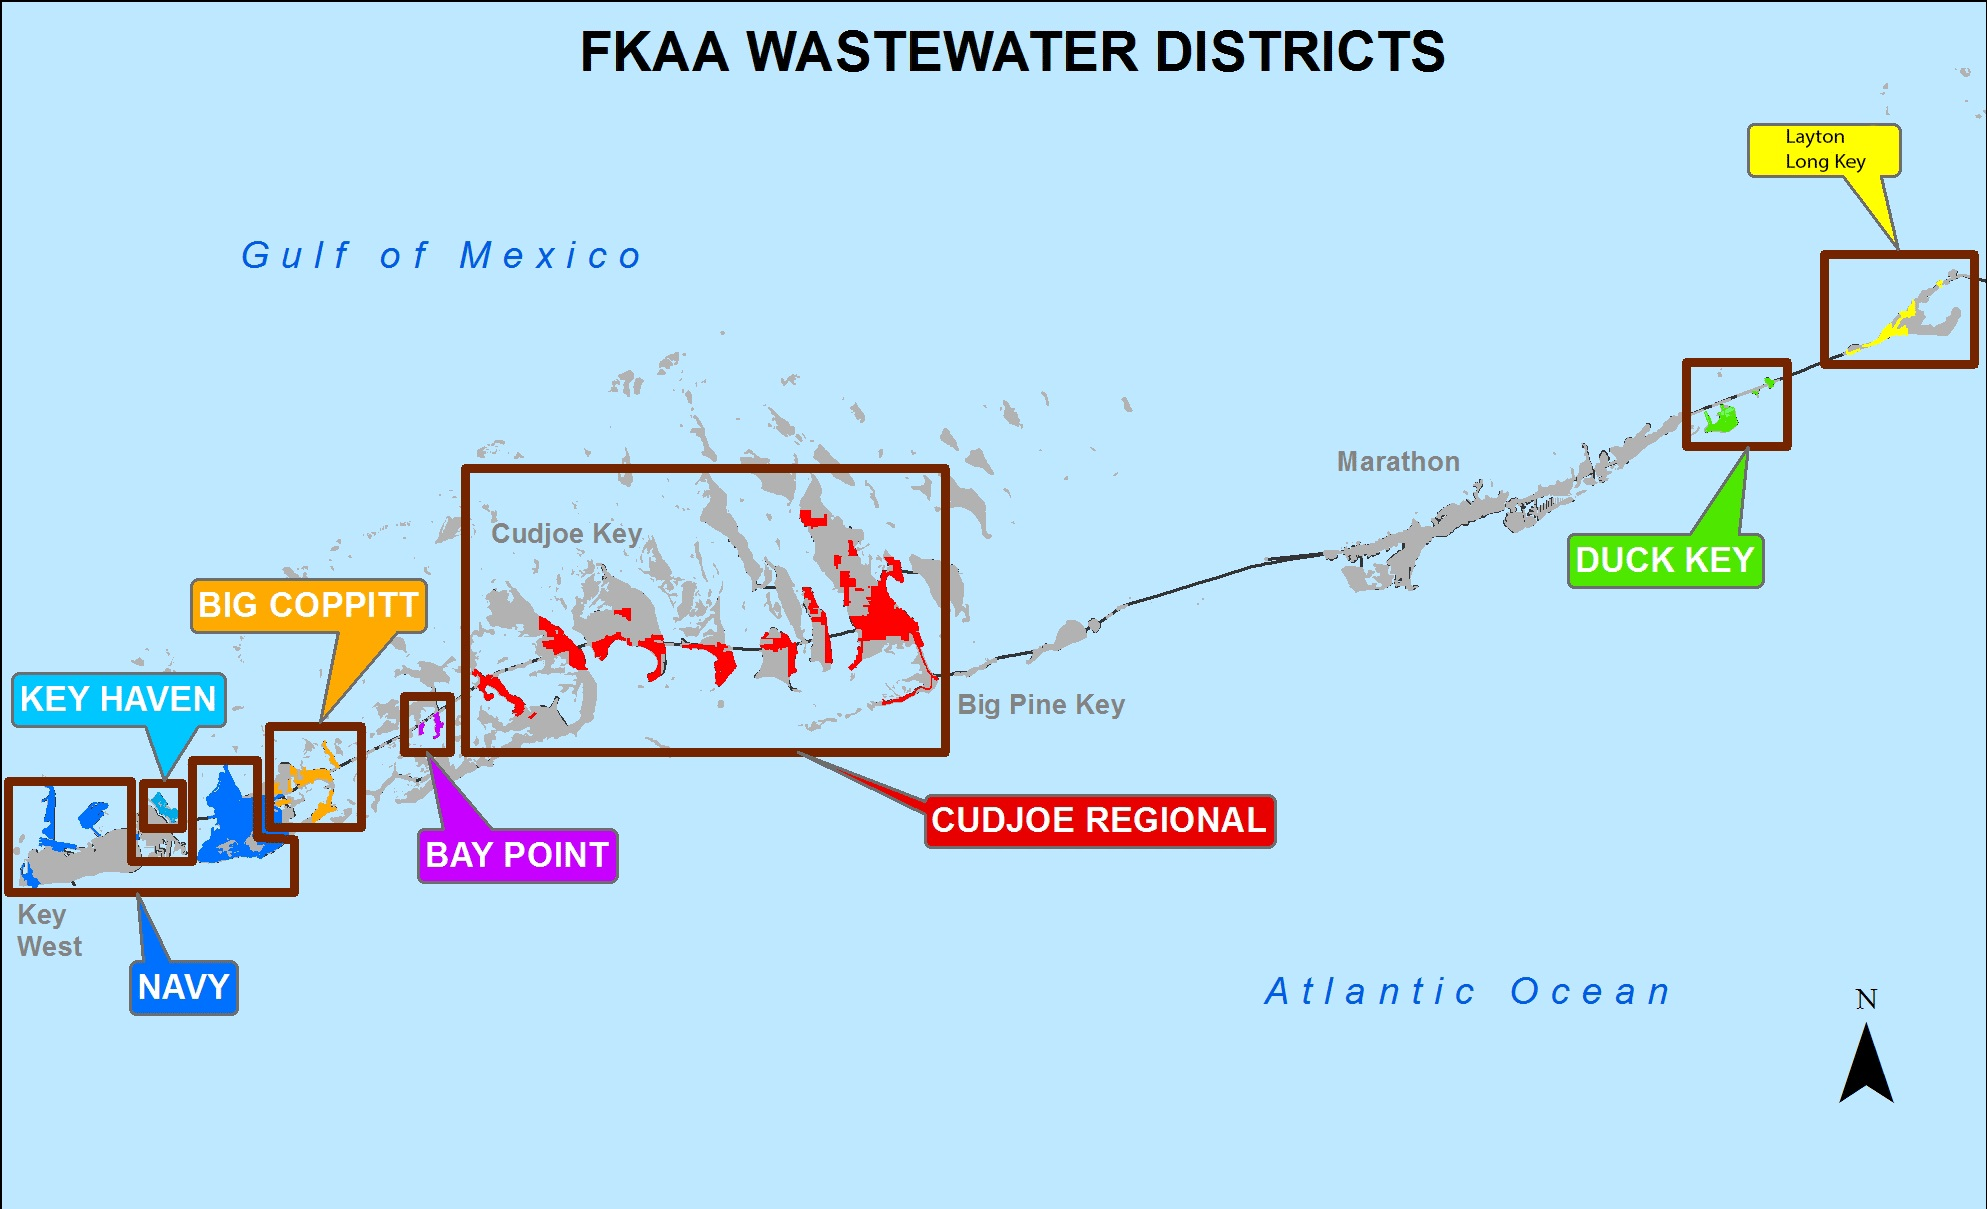 map of FKAA wastewater districts